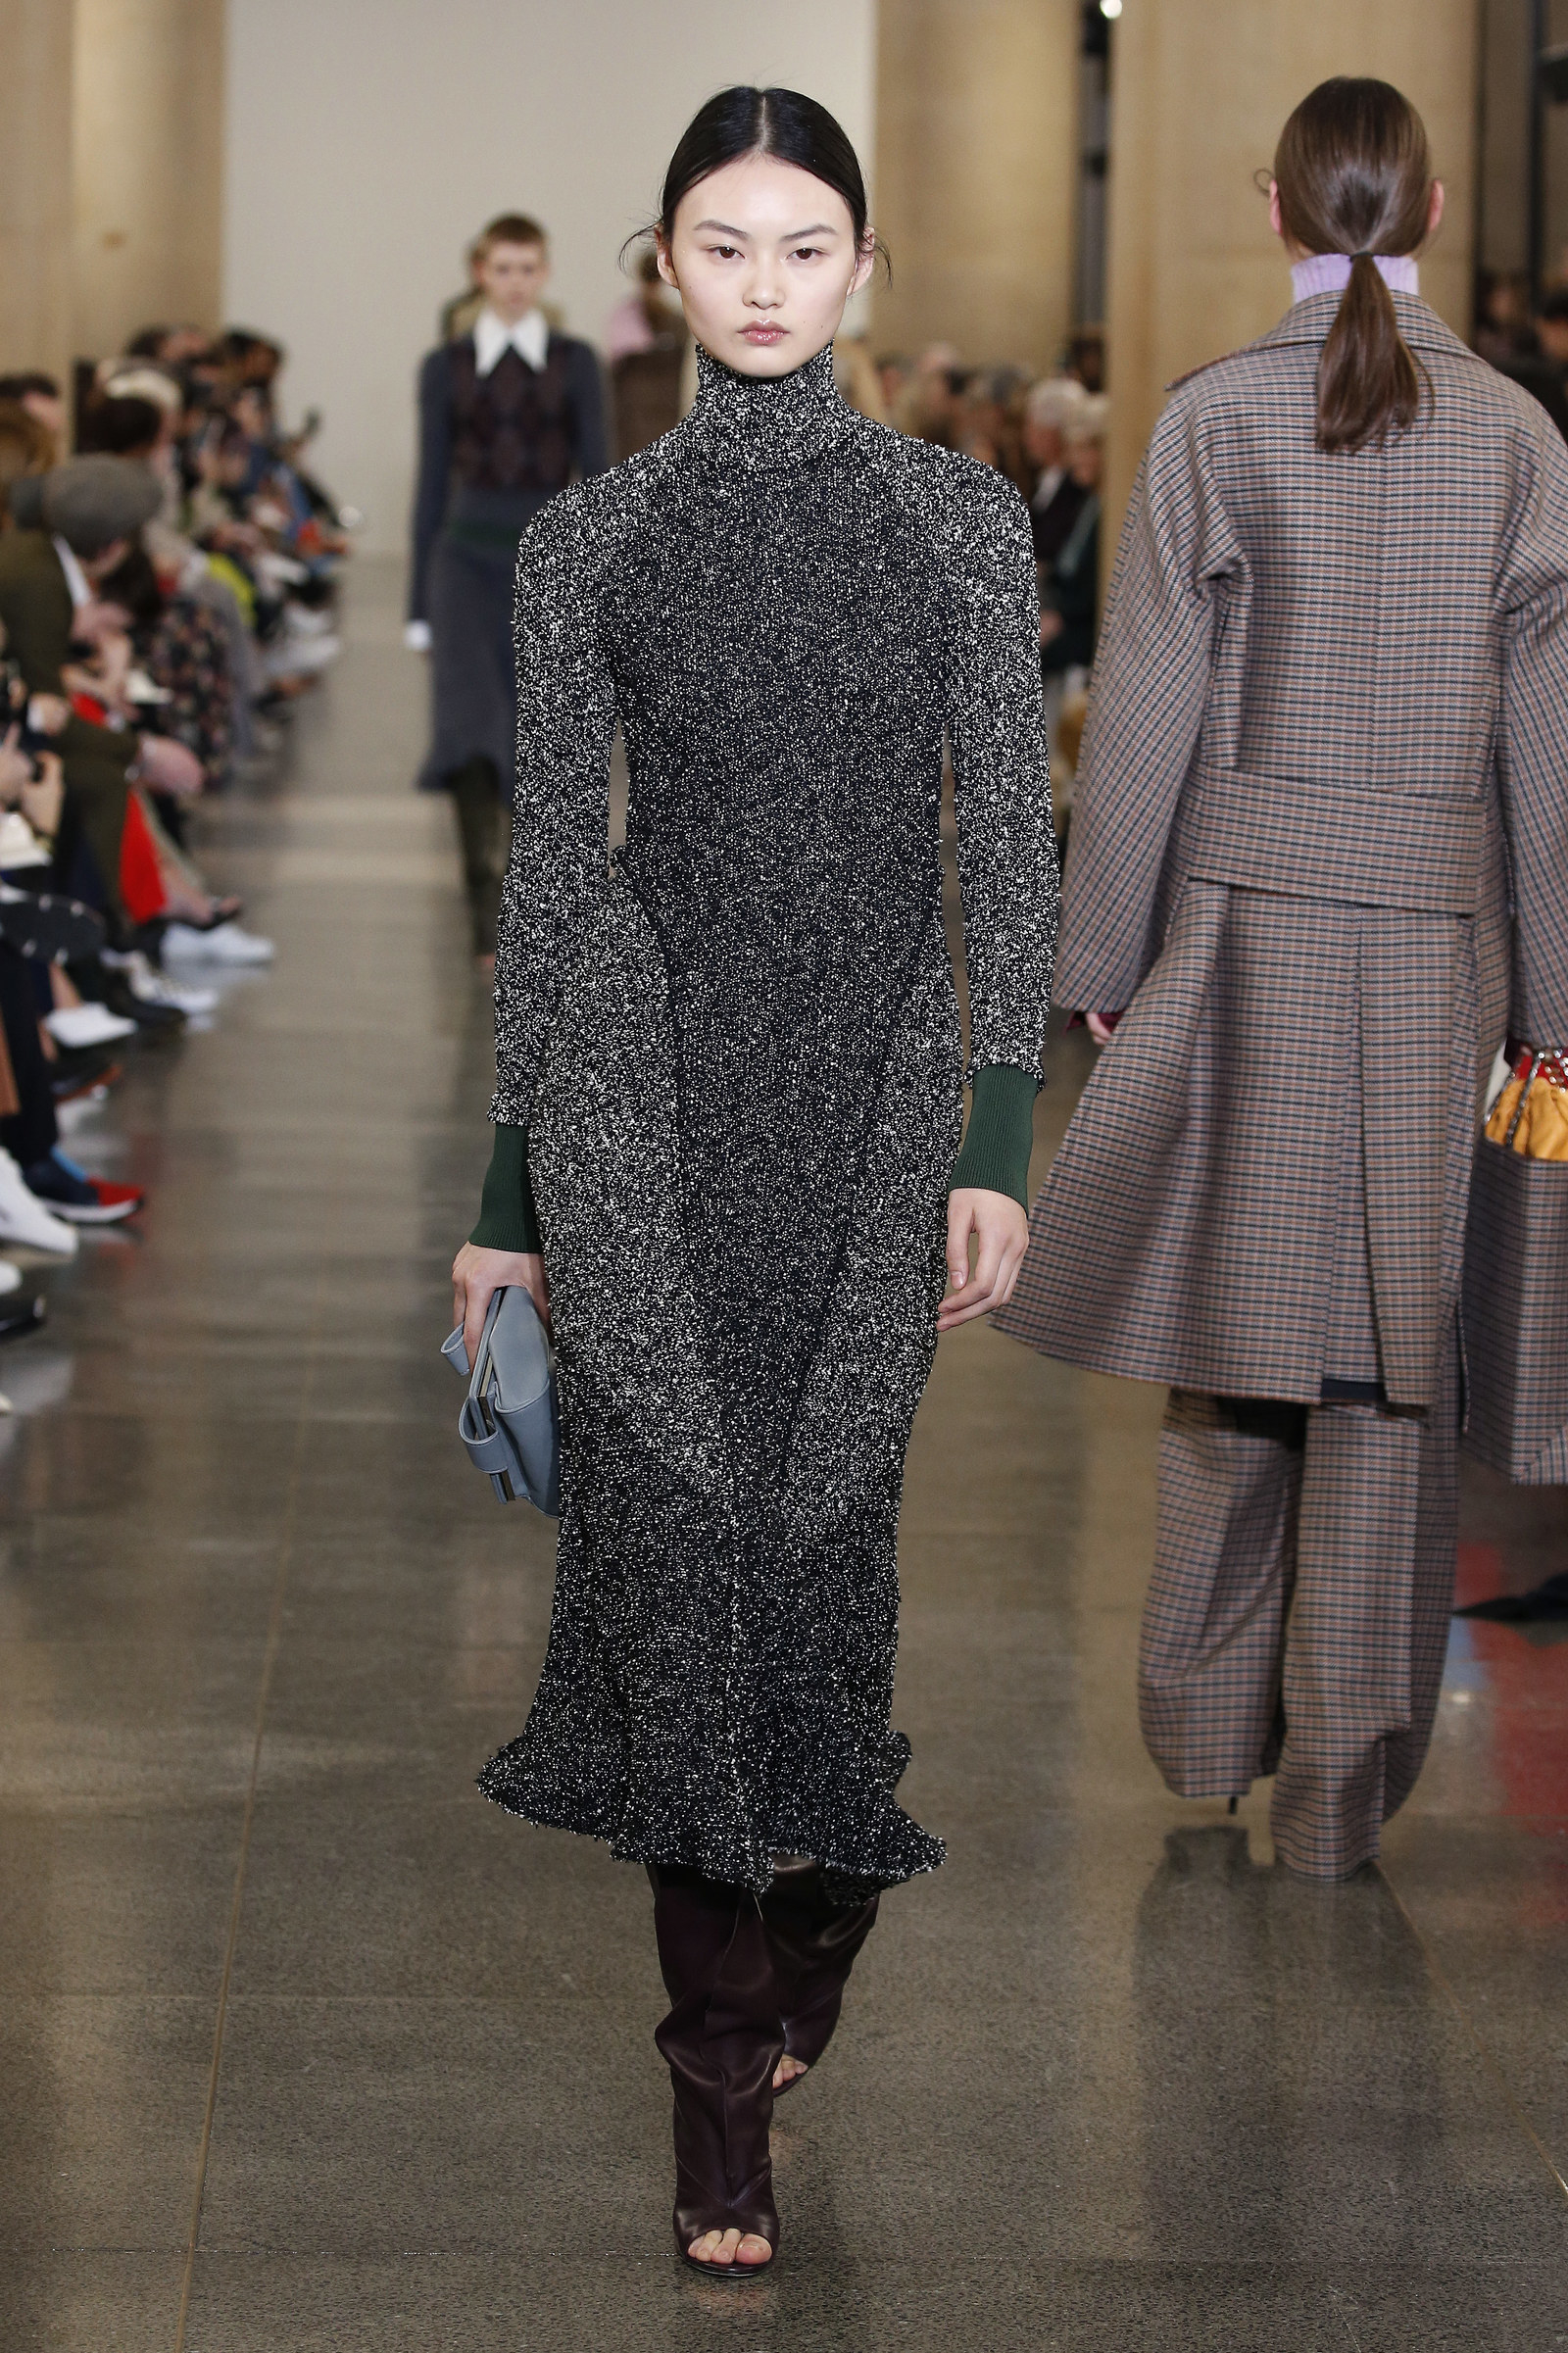 On Sunday, Victoria premiered her new collection at London Fashion Week.